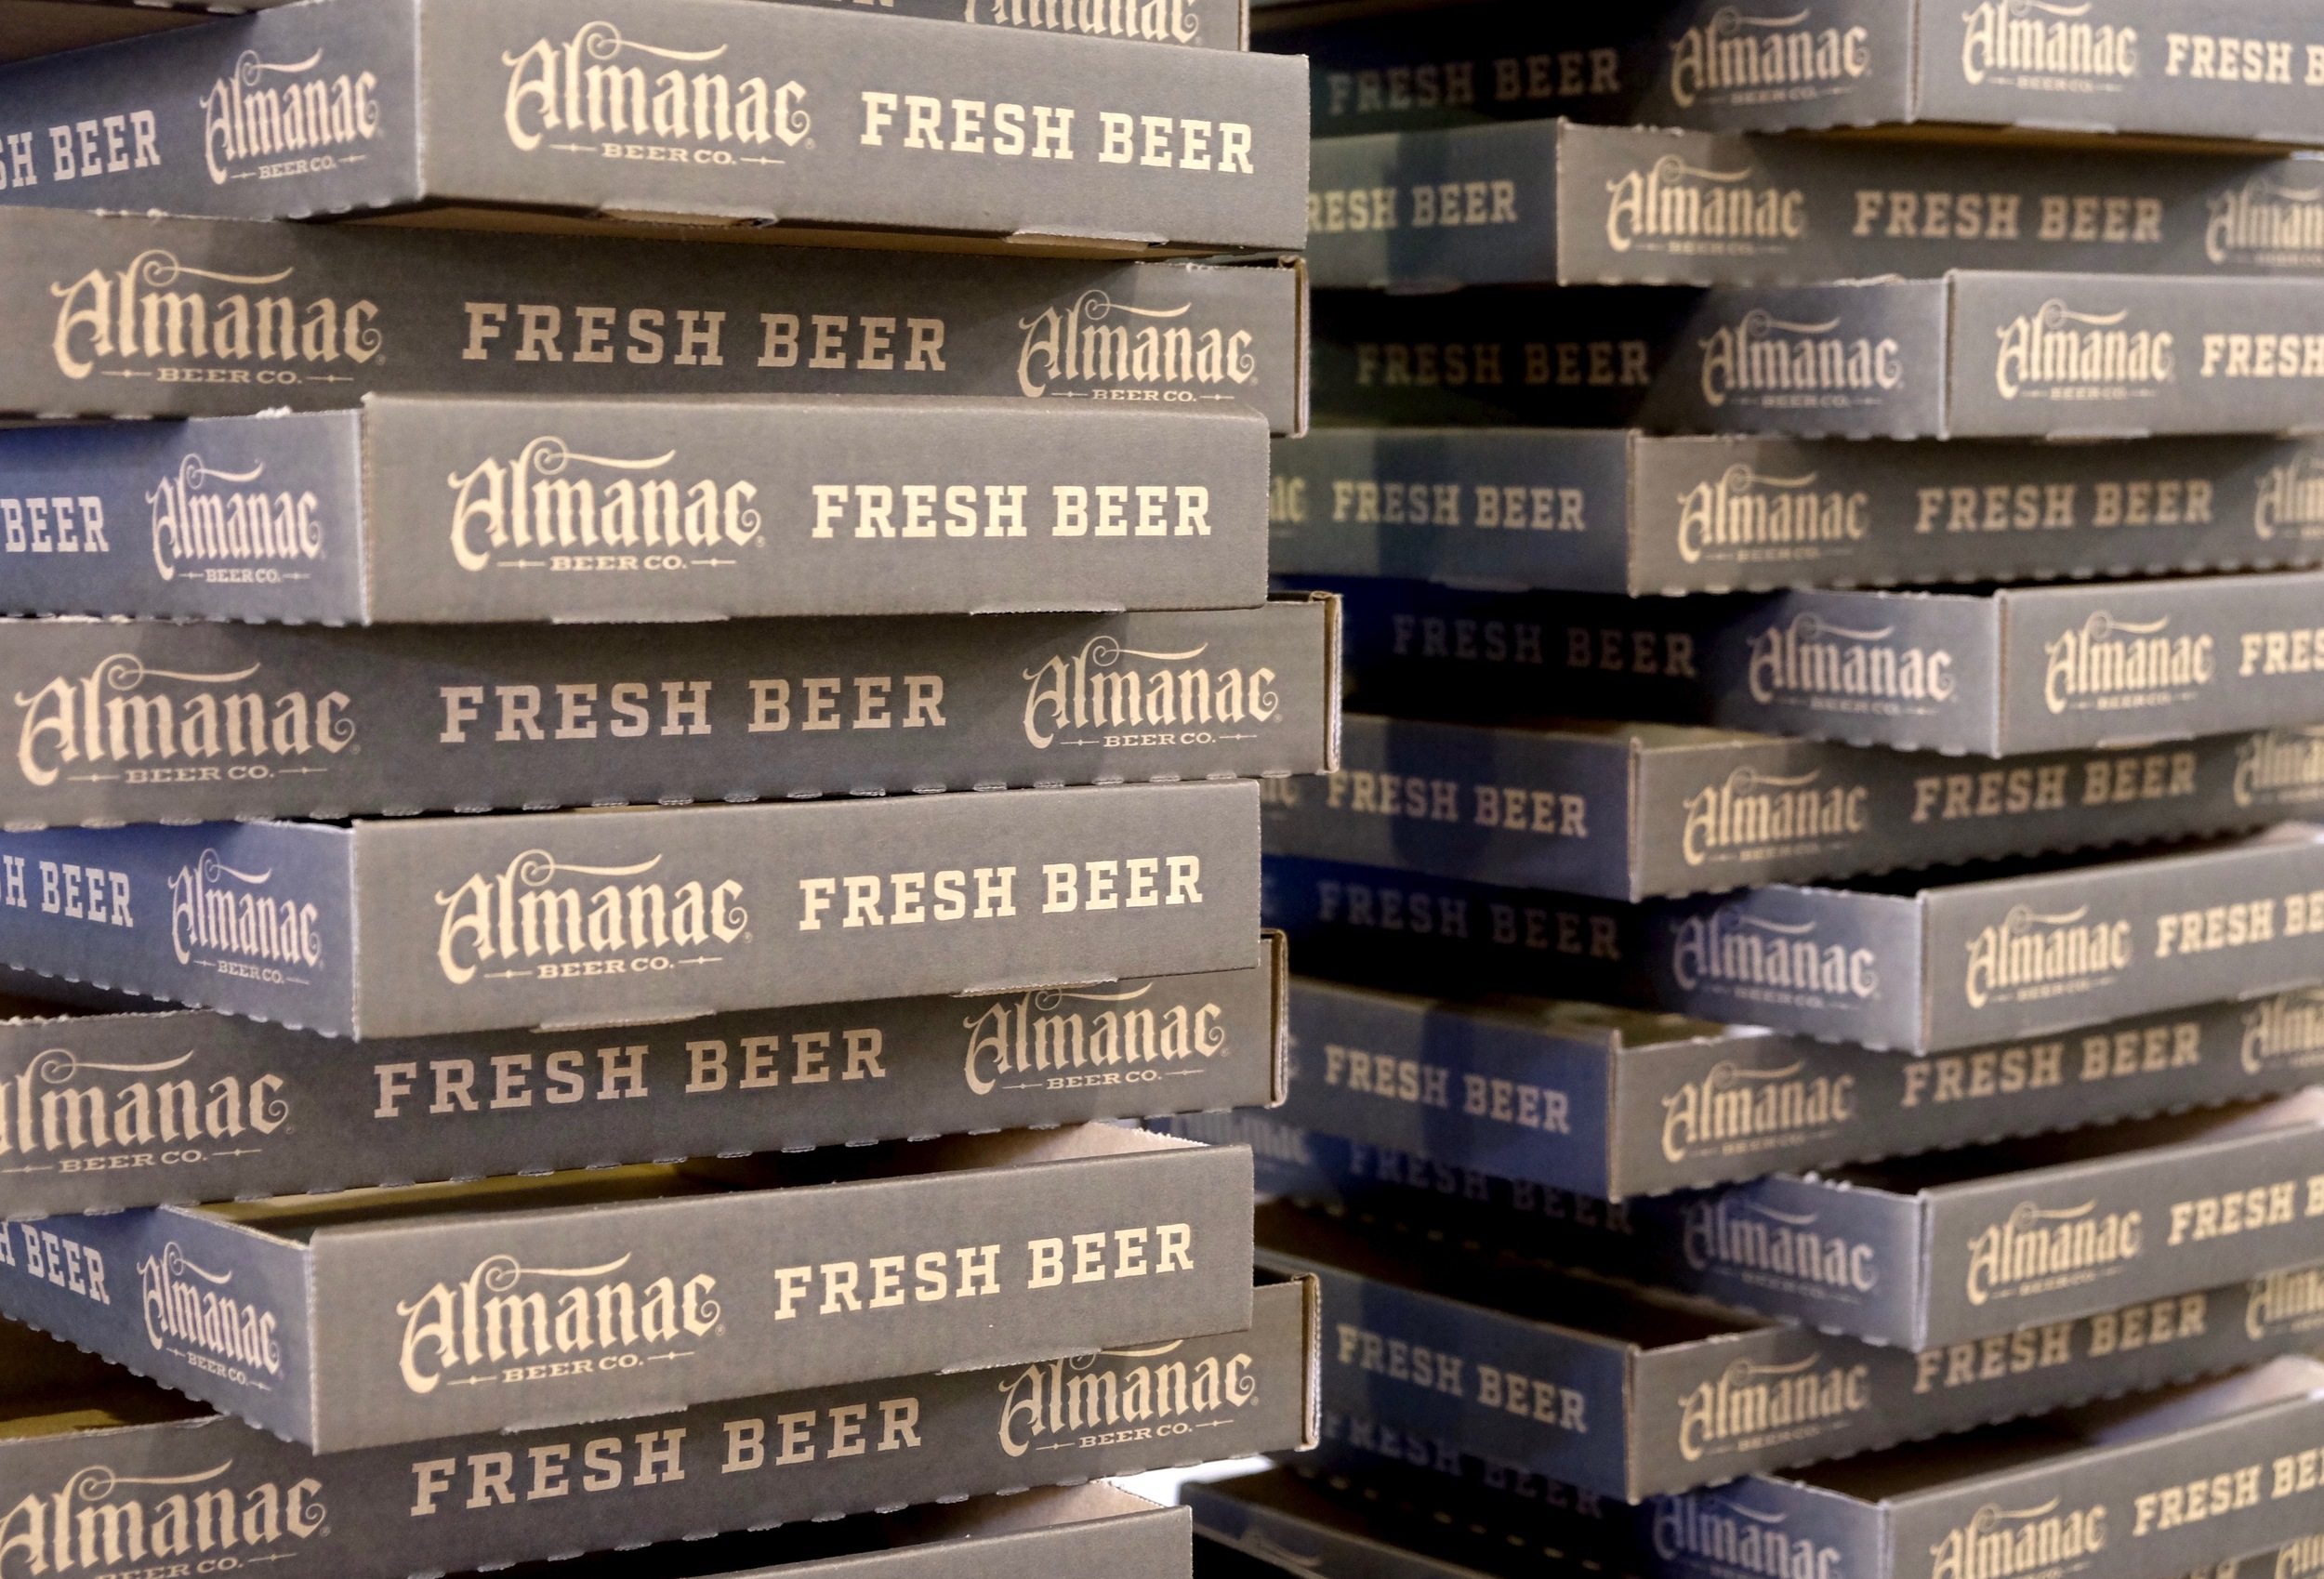 Almanac Beer Co. Cans